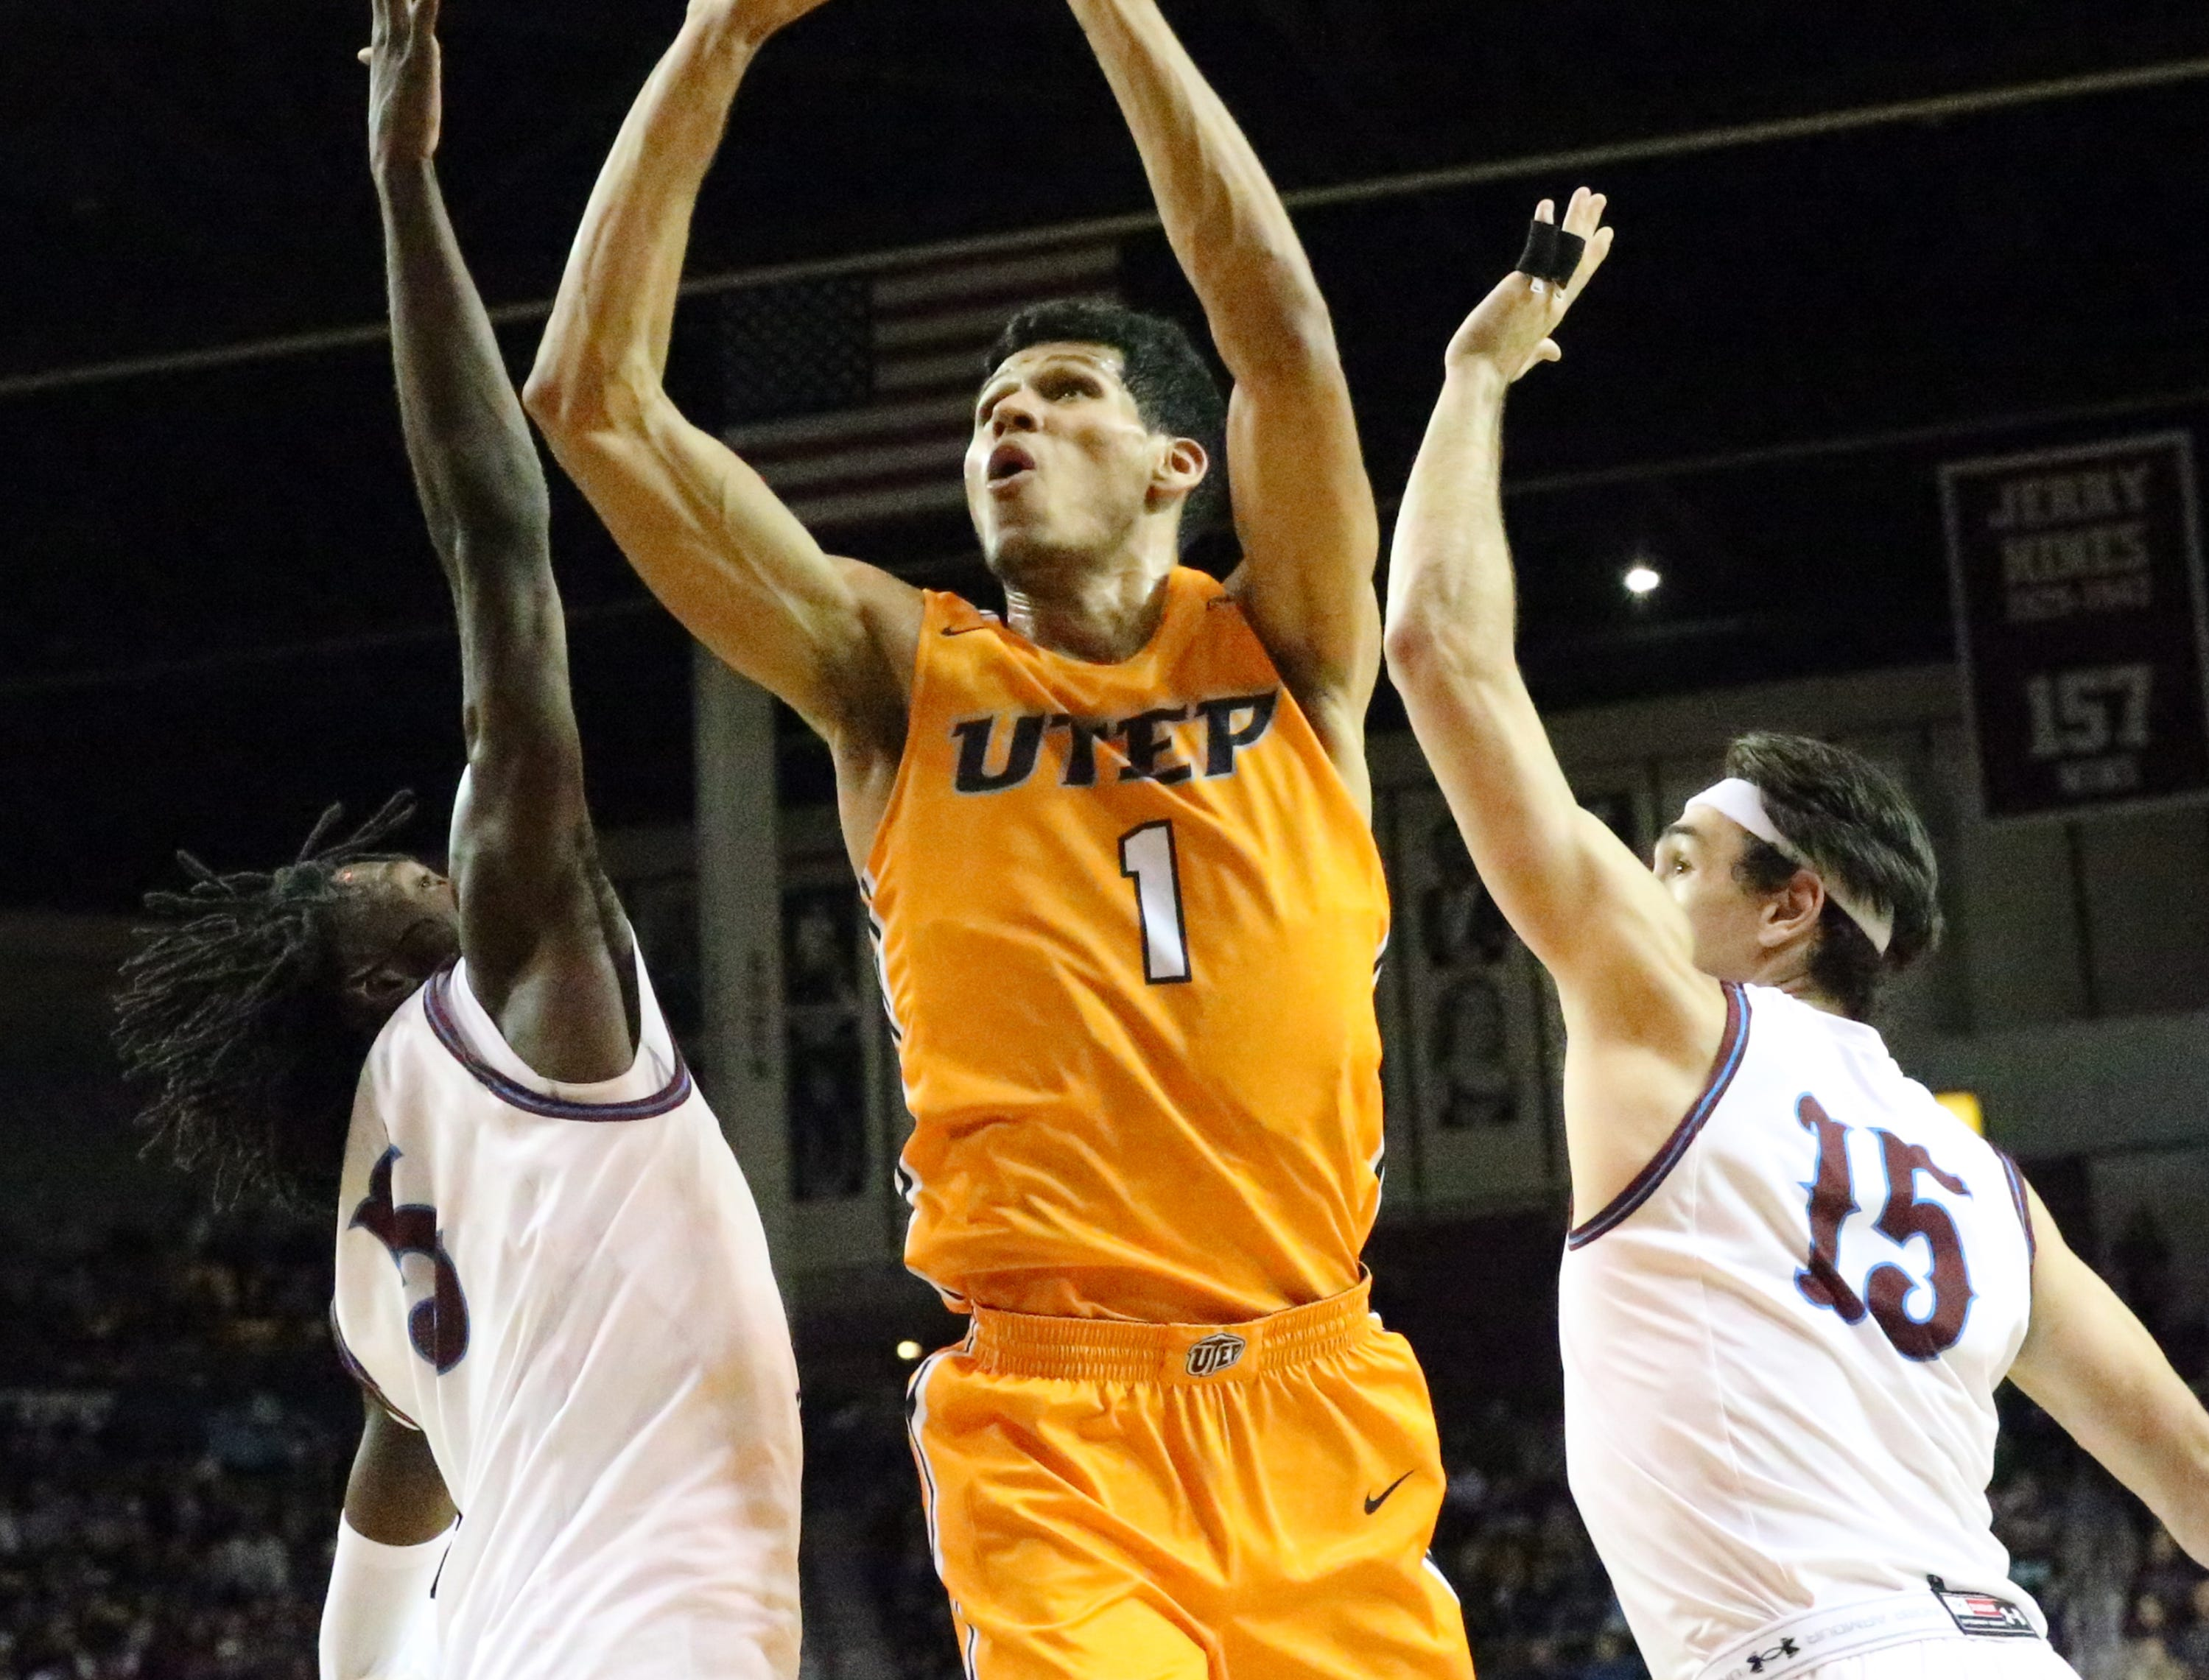 UTEP's Paul Thomas, 1, shoots against Clayton Henry, 5, and Ivan Aurrecoechea, 15 of NMSU Friday night.